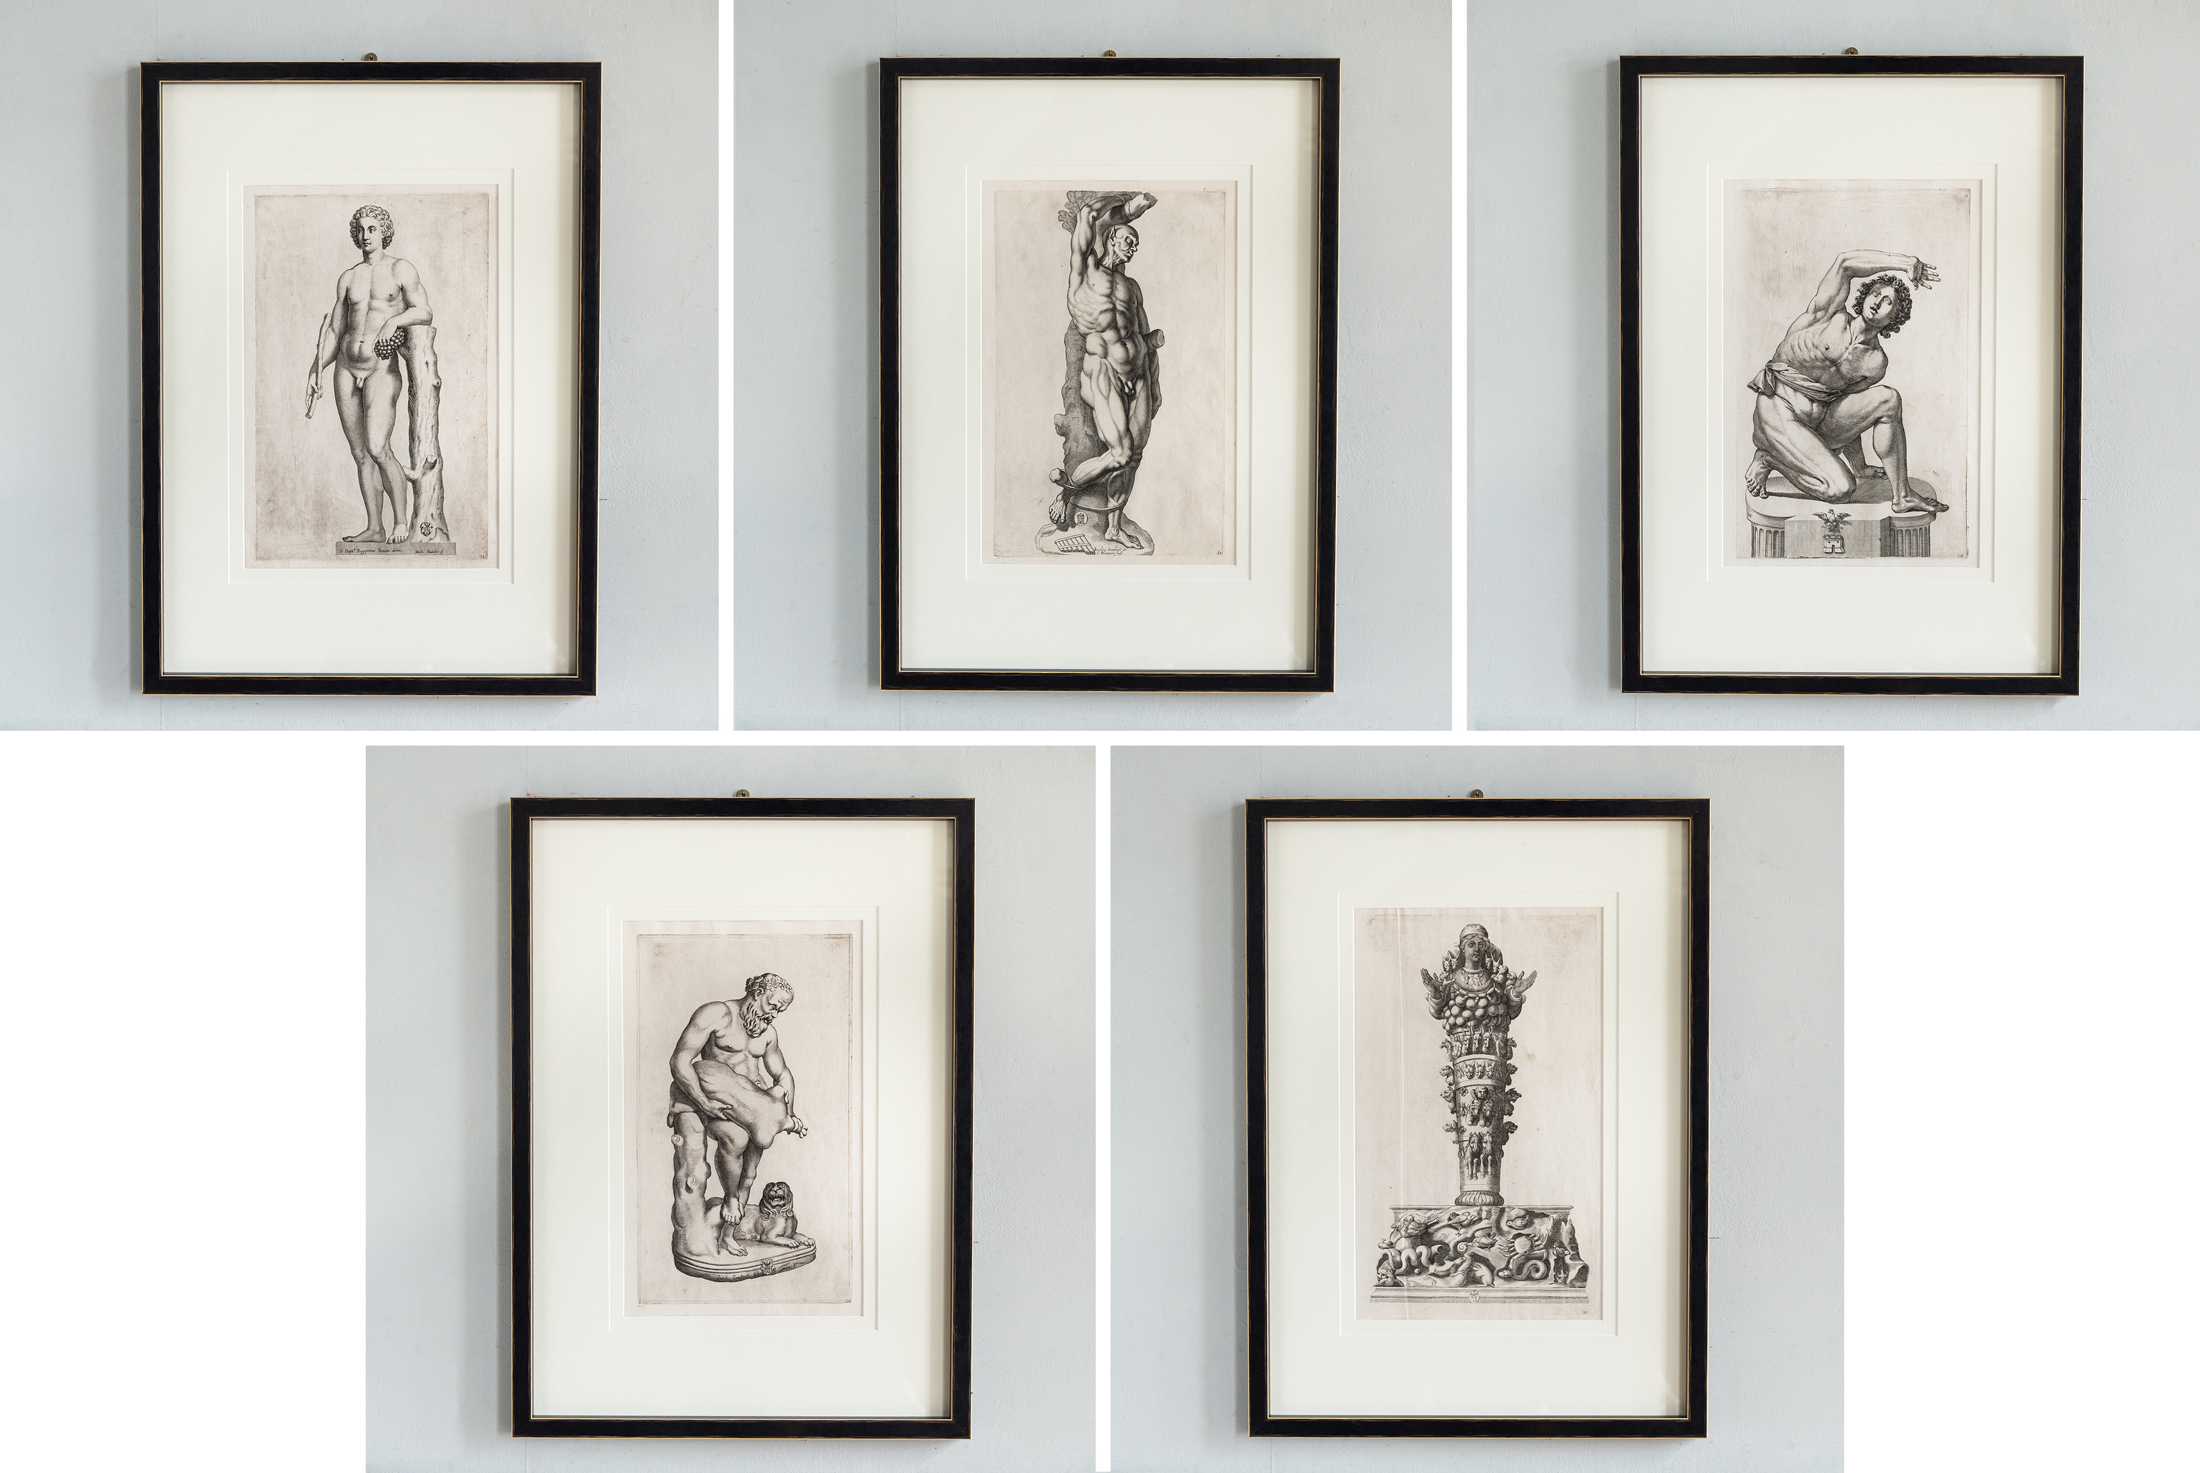 These prints are from a series showing the antique marble statues from the collection of Vincenzo Giustiniana,